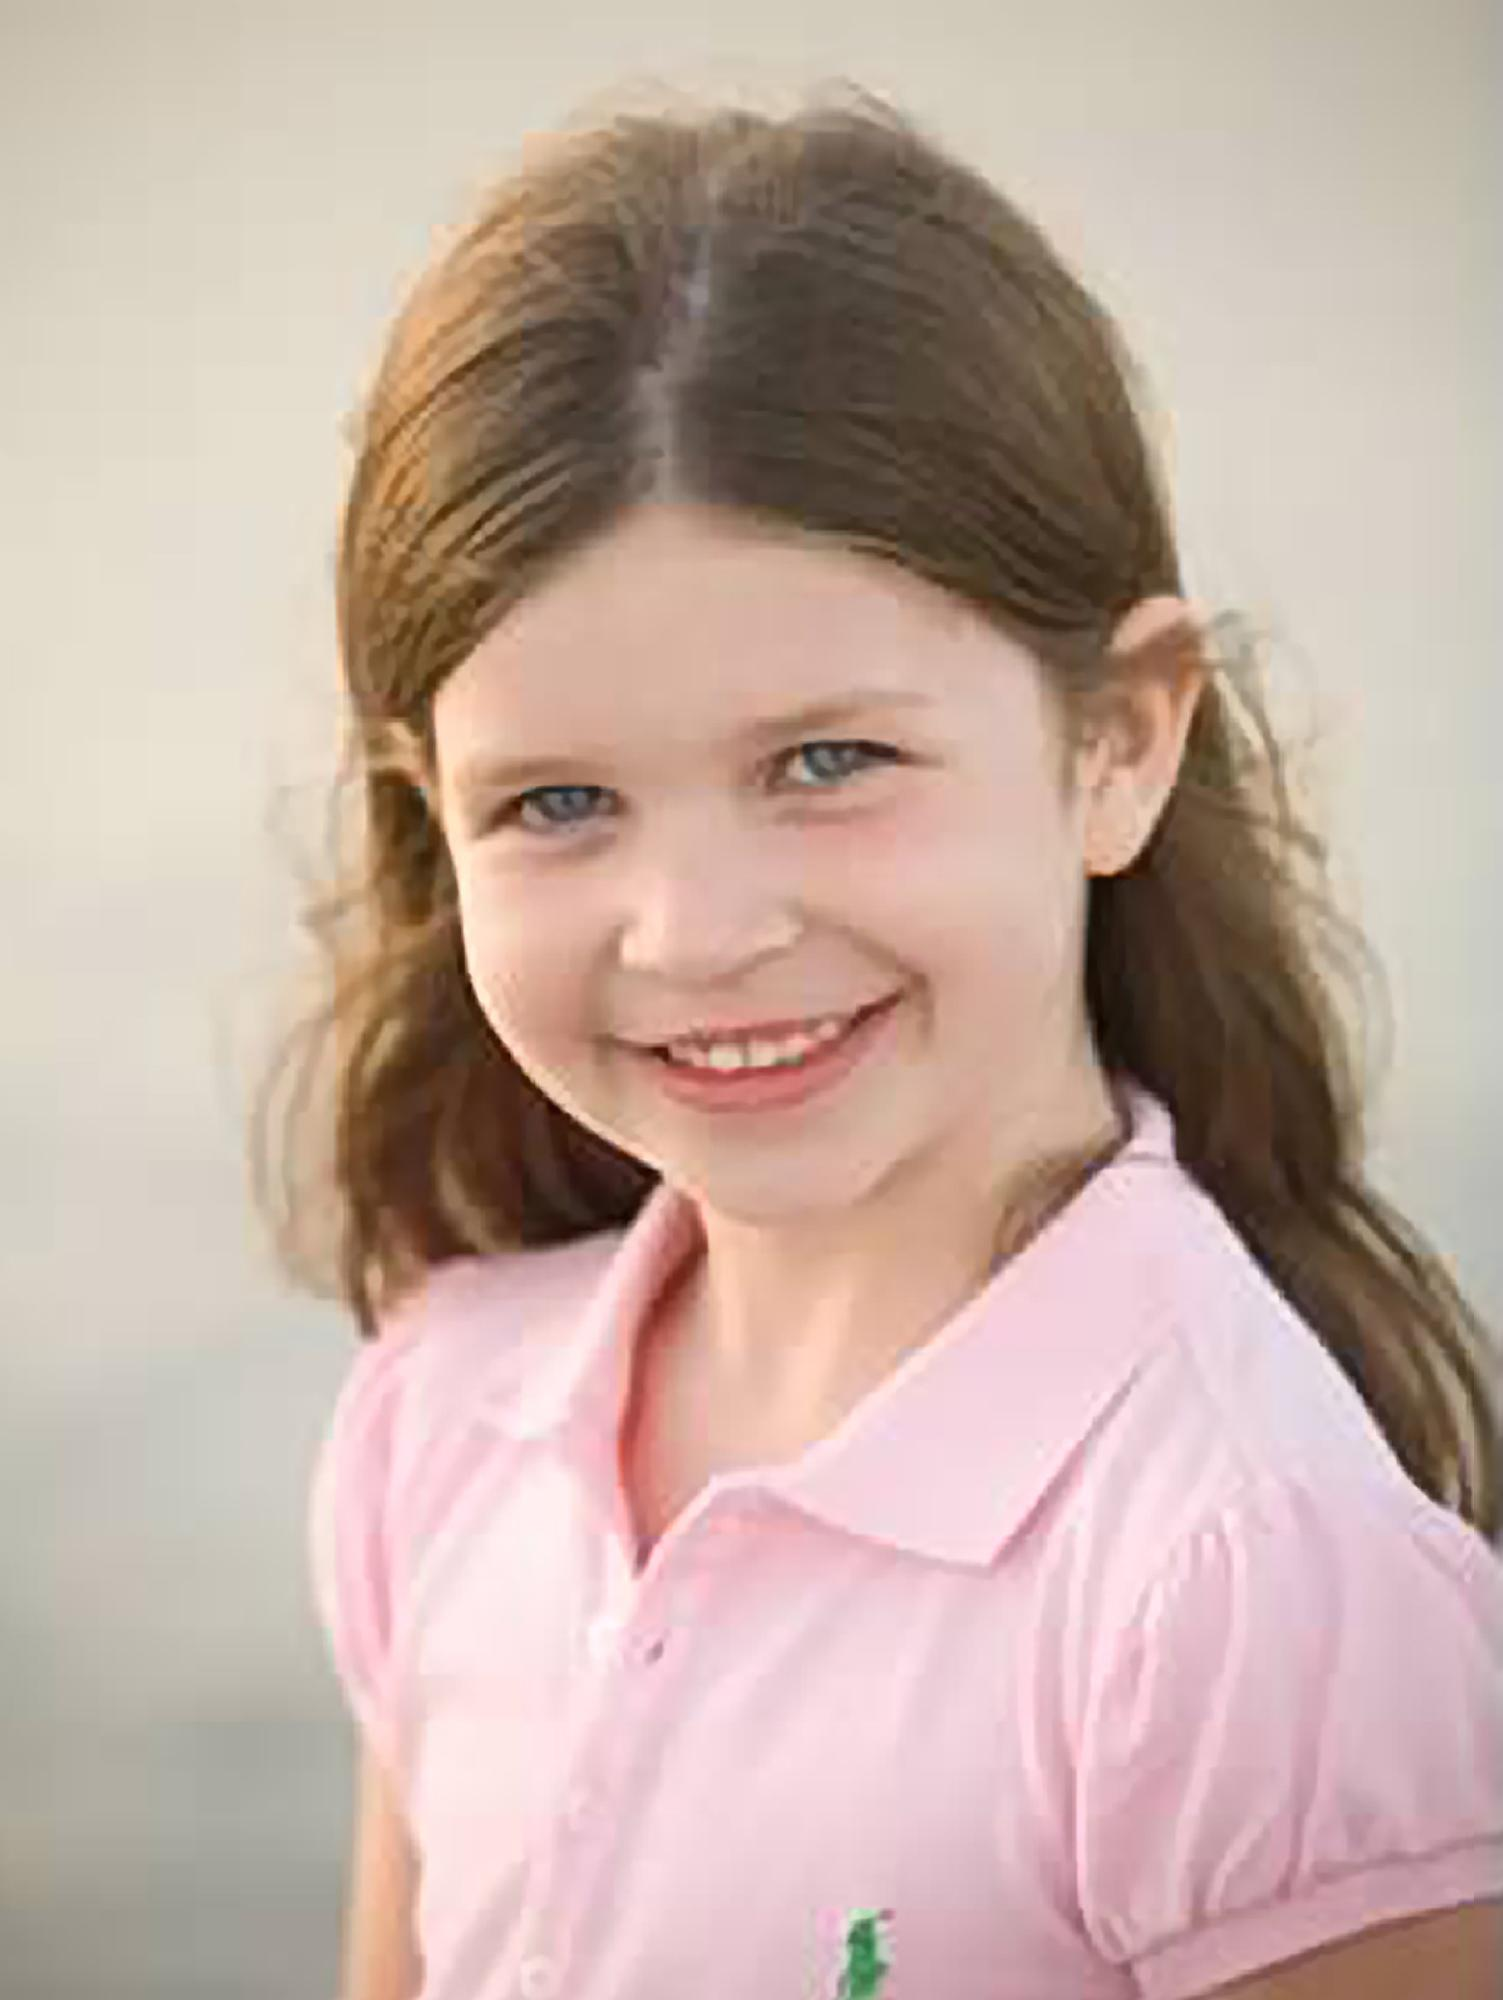 This photo provided by the family shows Jessica Rekos. Rekos, 6, was killed Friday, Dec. 14, 2012, when a gunman opened fire at Sandy Hook Elementary School, in Newtown, Conn., killing 26 children and adults at the school, before killing himself. (AP Photo/Courtesy of Rekos Family)